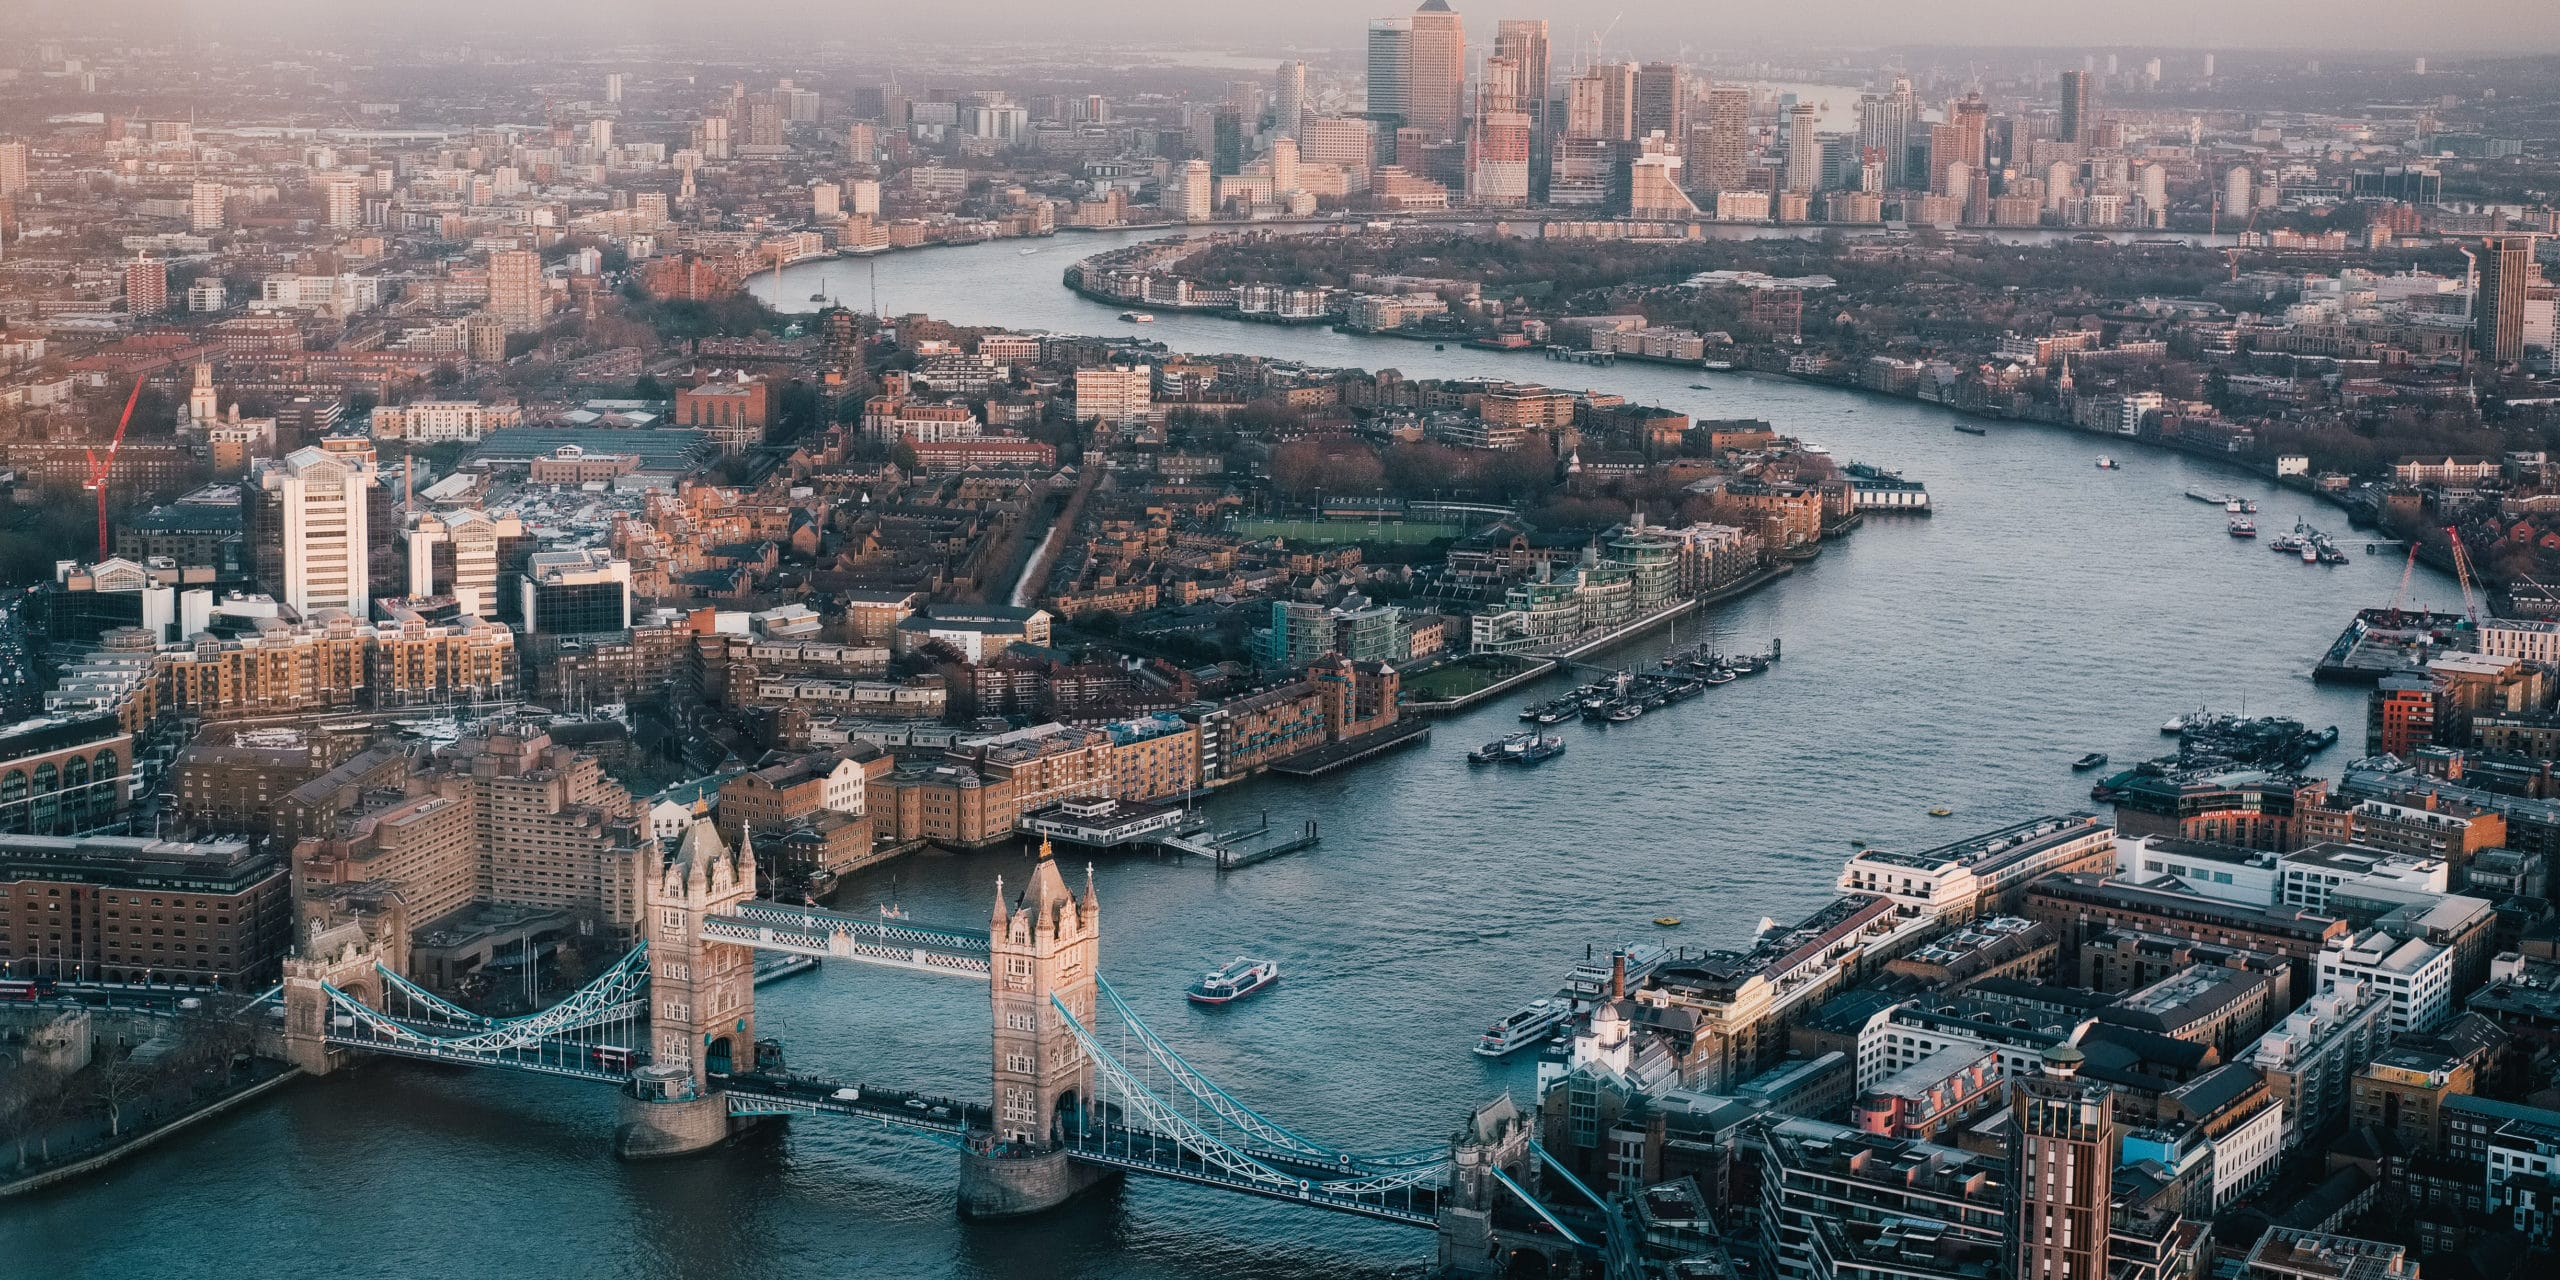 Aerial view of the River Thames winding through the city of London. City skyline with the Tower Bridge in the forefront.